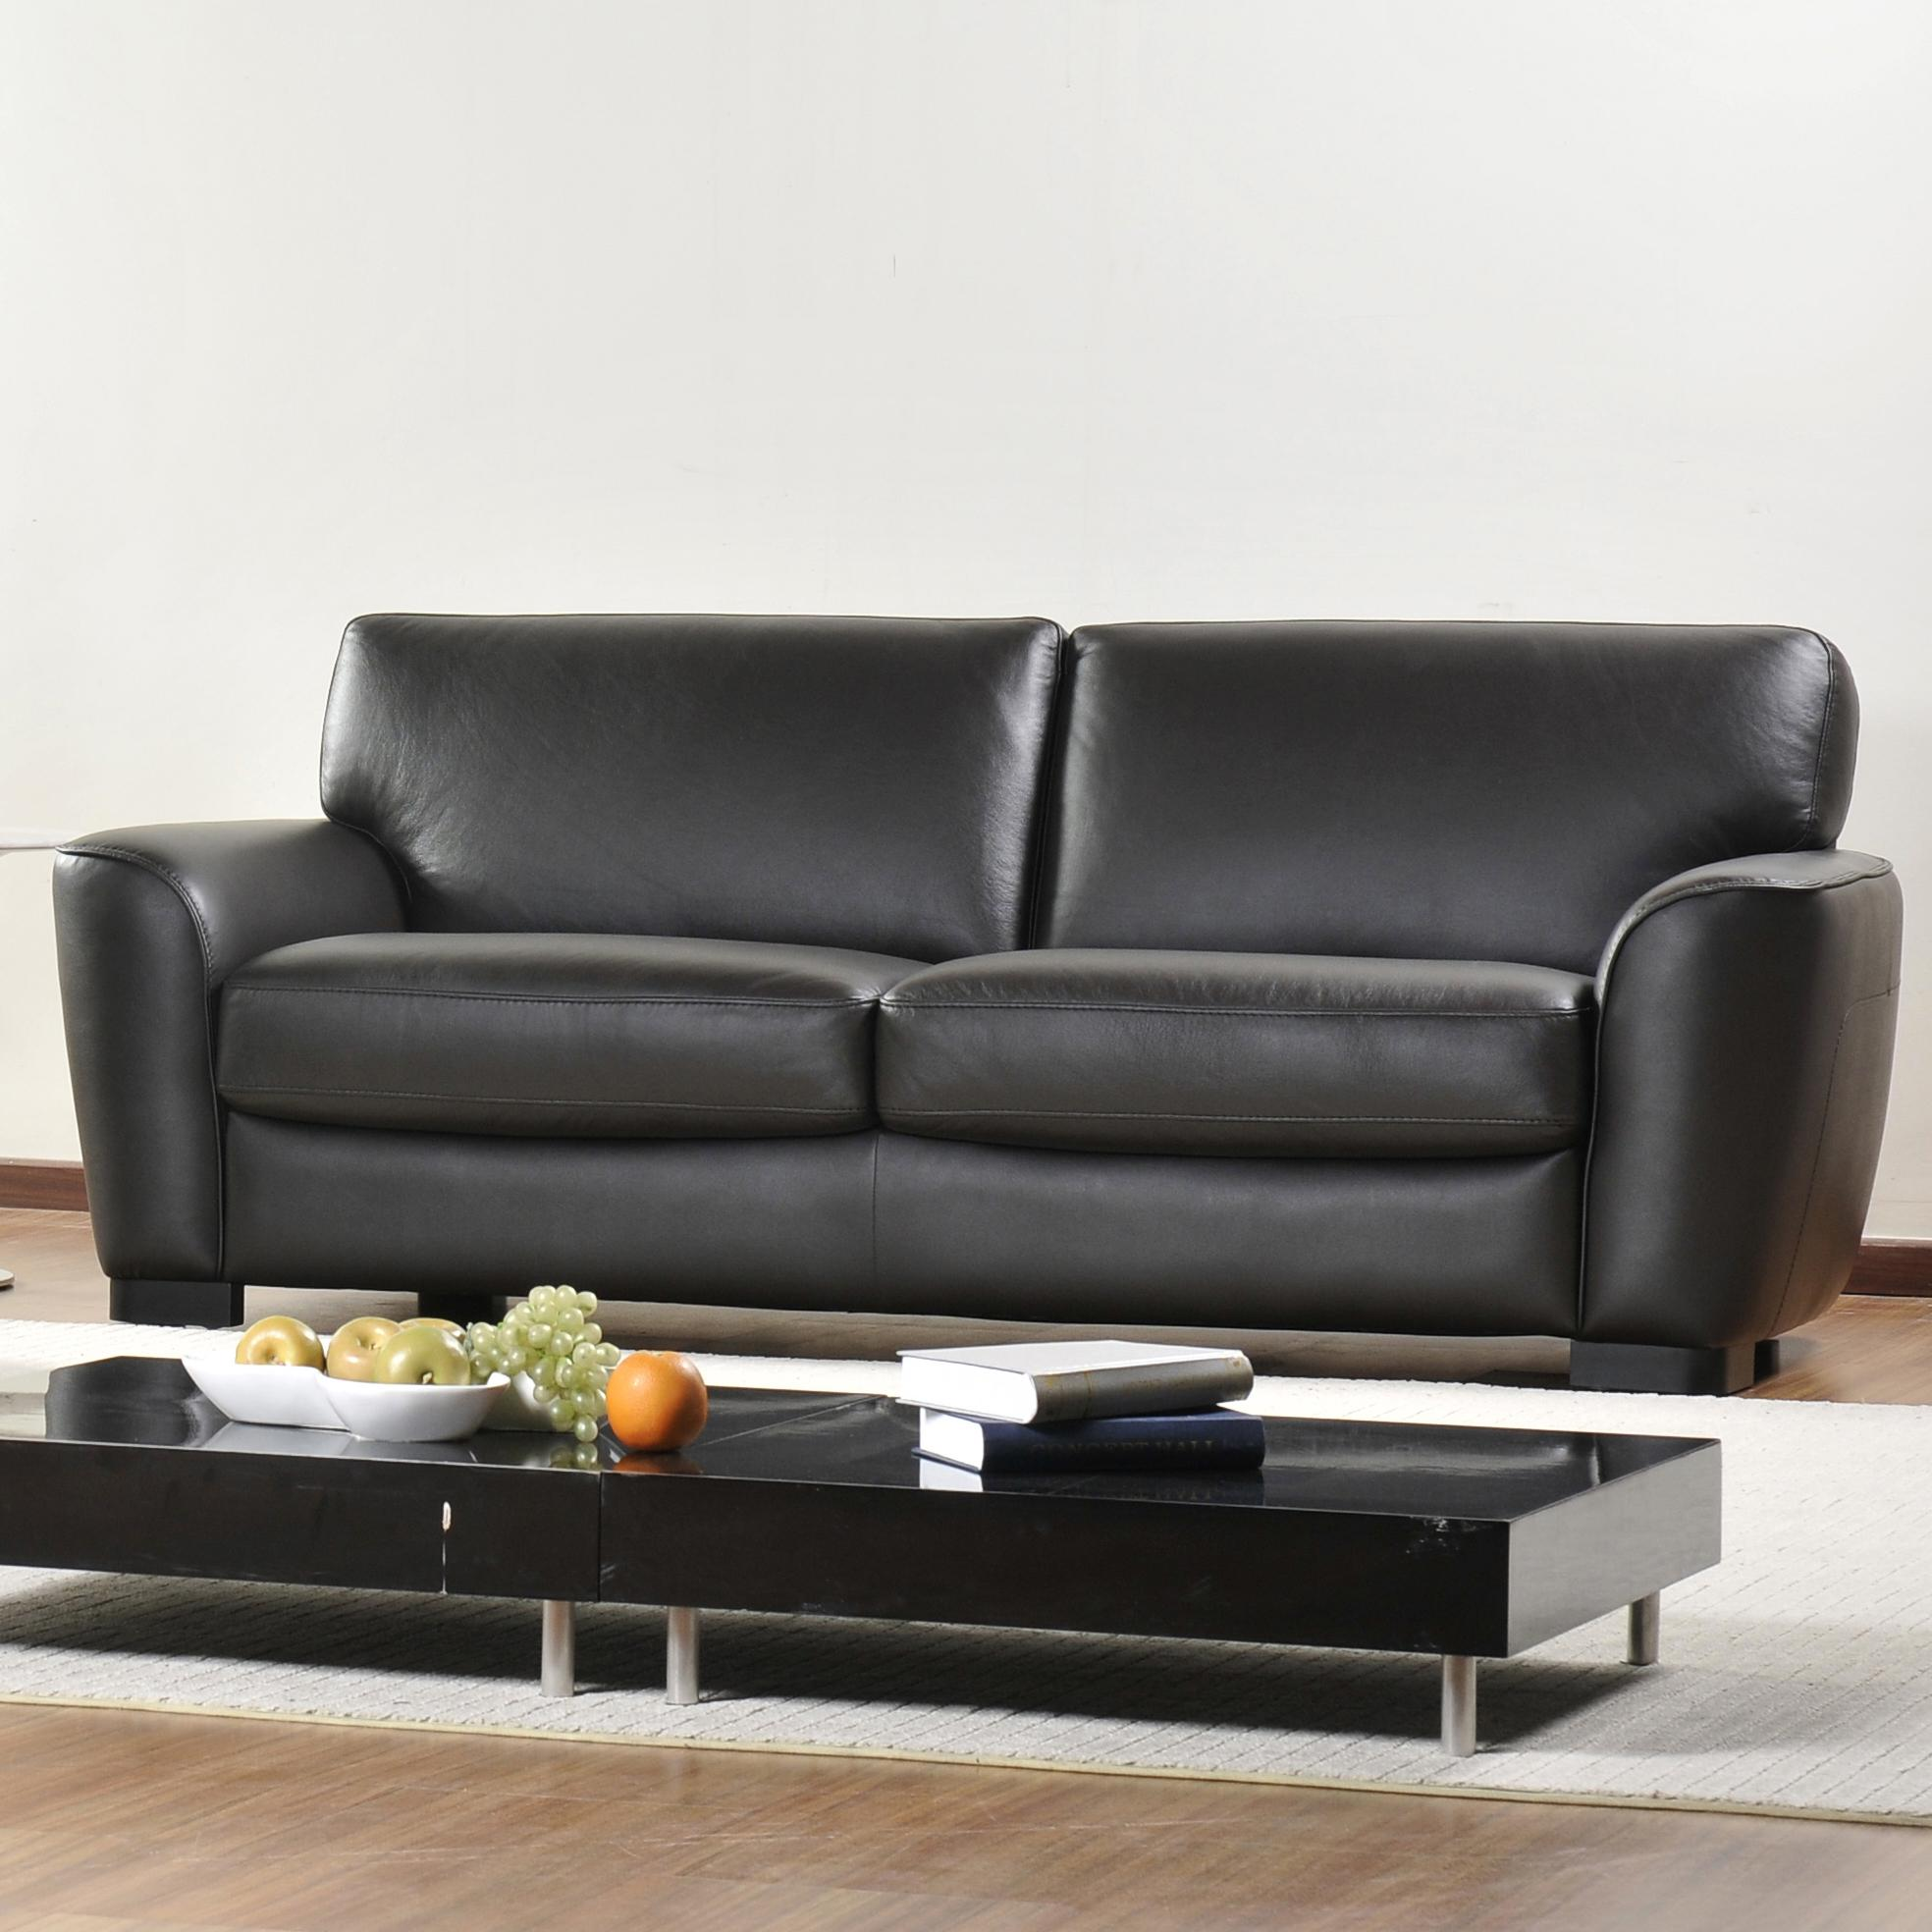 5458 Sofa by Violino at Furniture Superstore - Rochester, MN